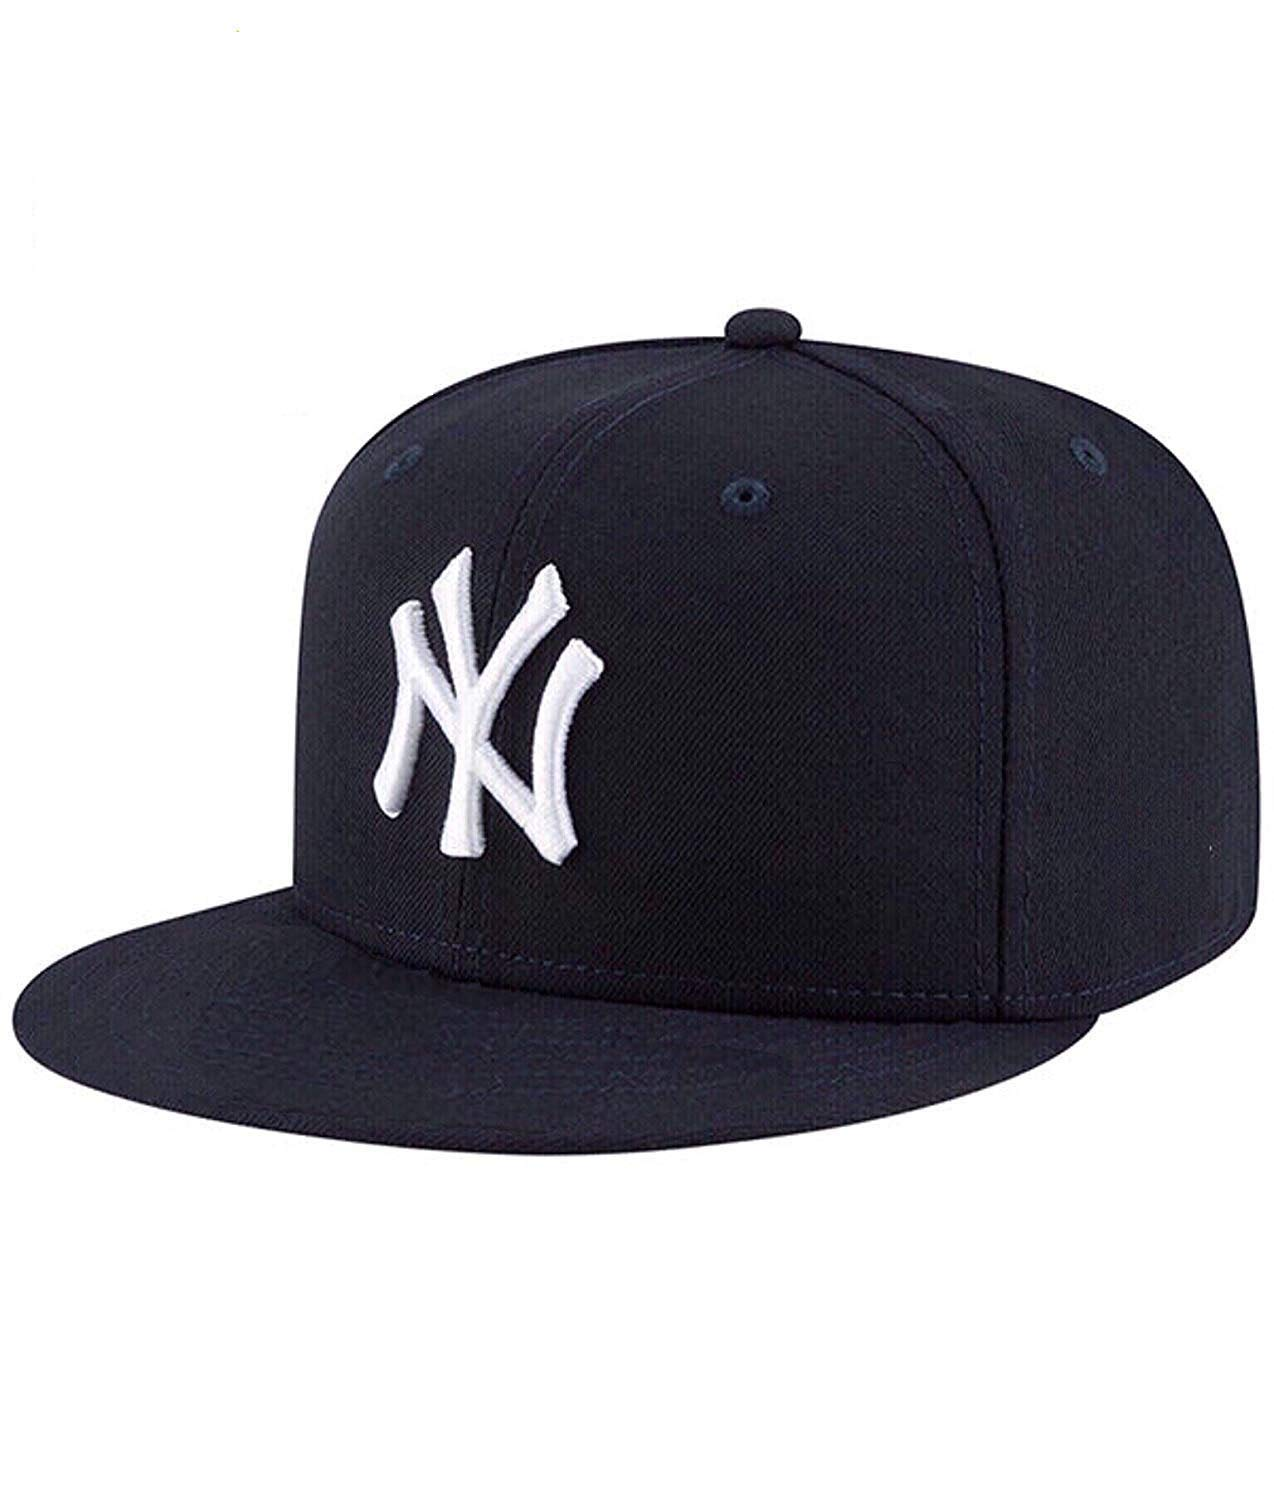 5605eab7dc5 Buy Hashtag Solid Ny White Hip Hop Cap Boy s Cotton Snapback Baseball  (Black   White) Online at Low Prices in India - Amazon.in